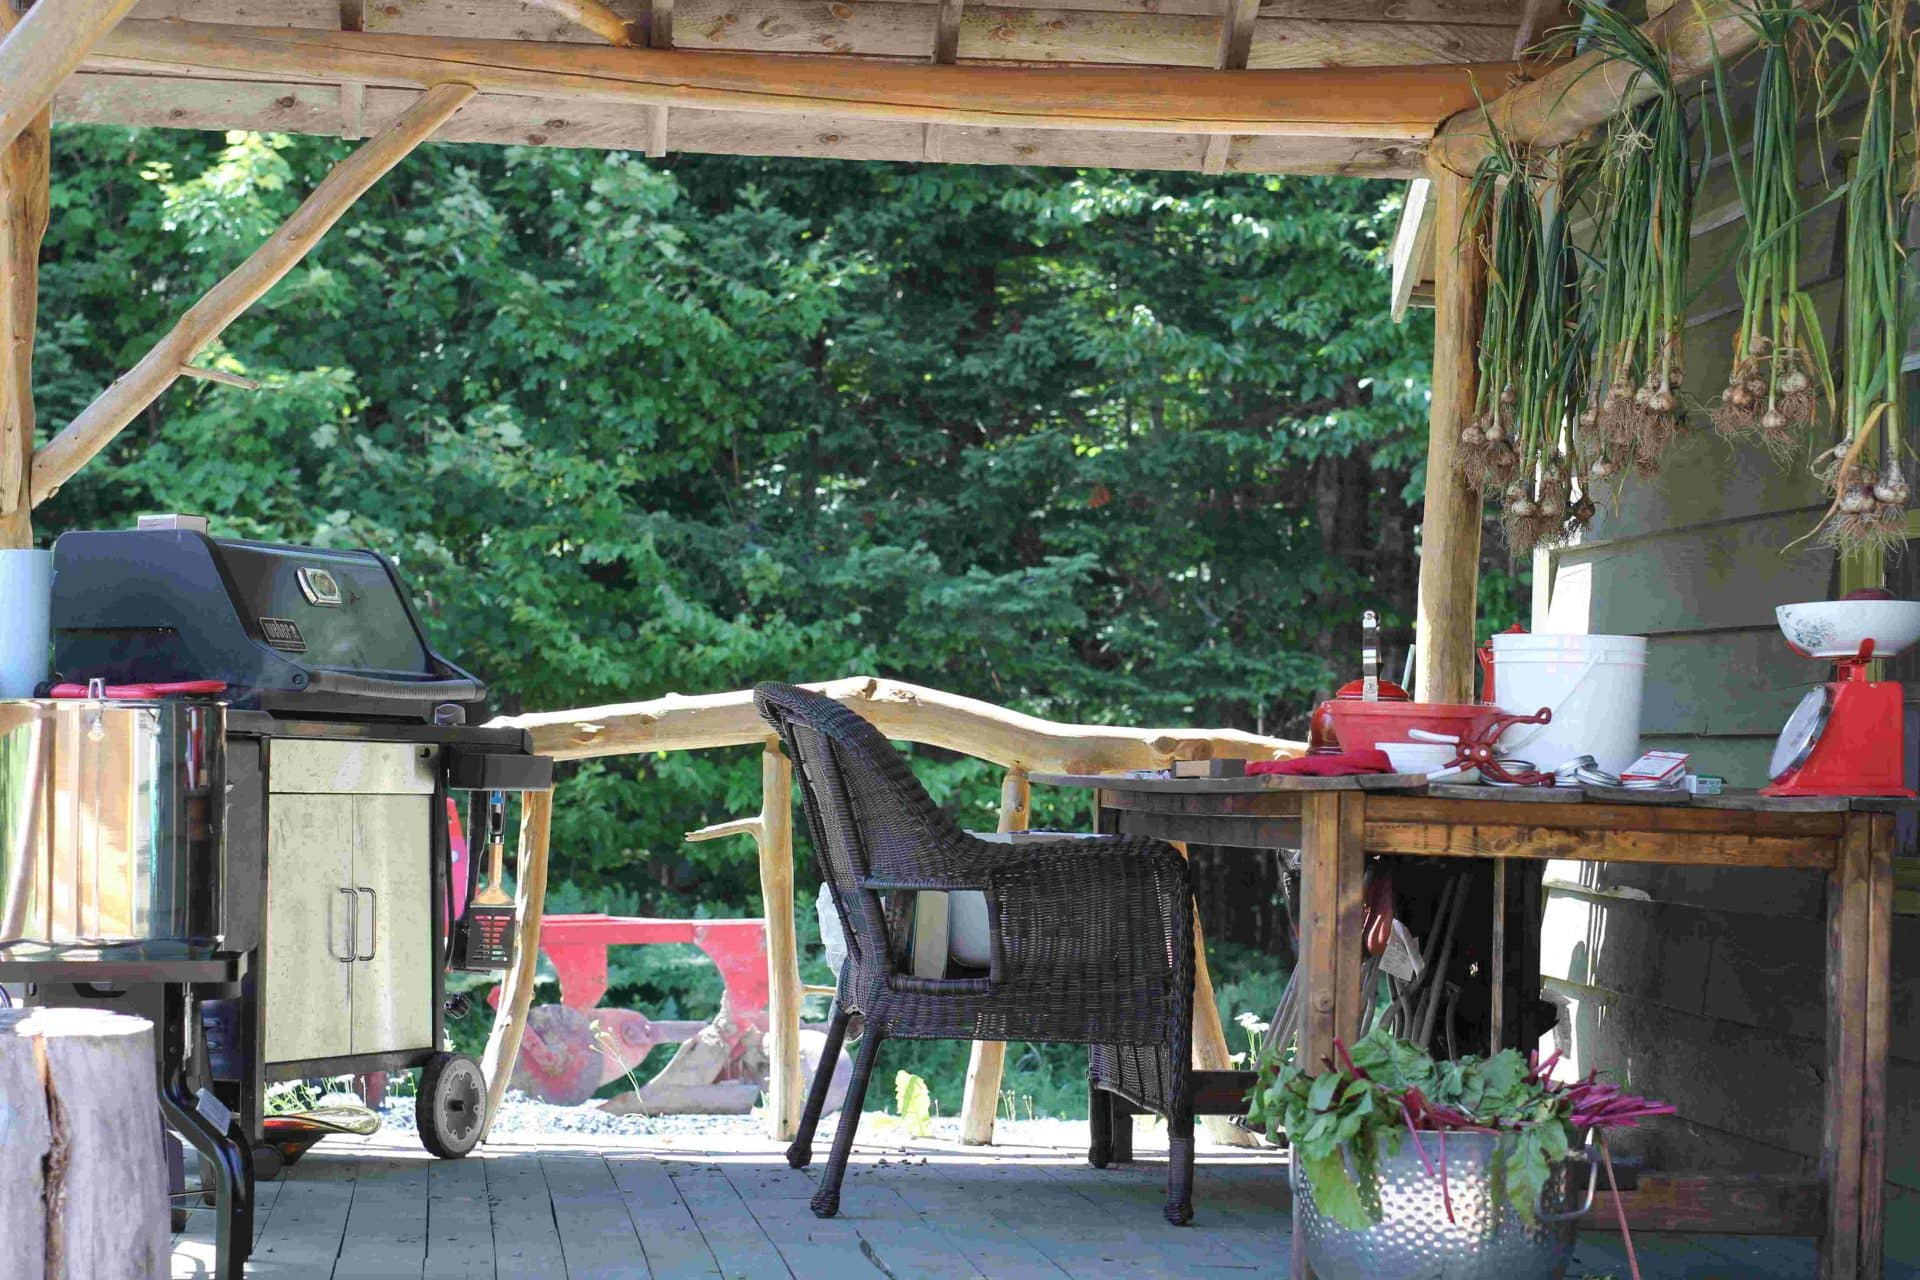 Outdoor Canning Kitchen The Homestead Kitchen Tips For Creating A Practical Rustic Self